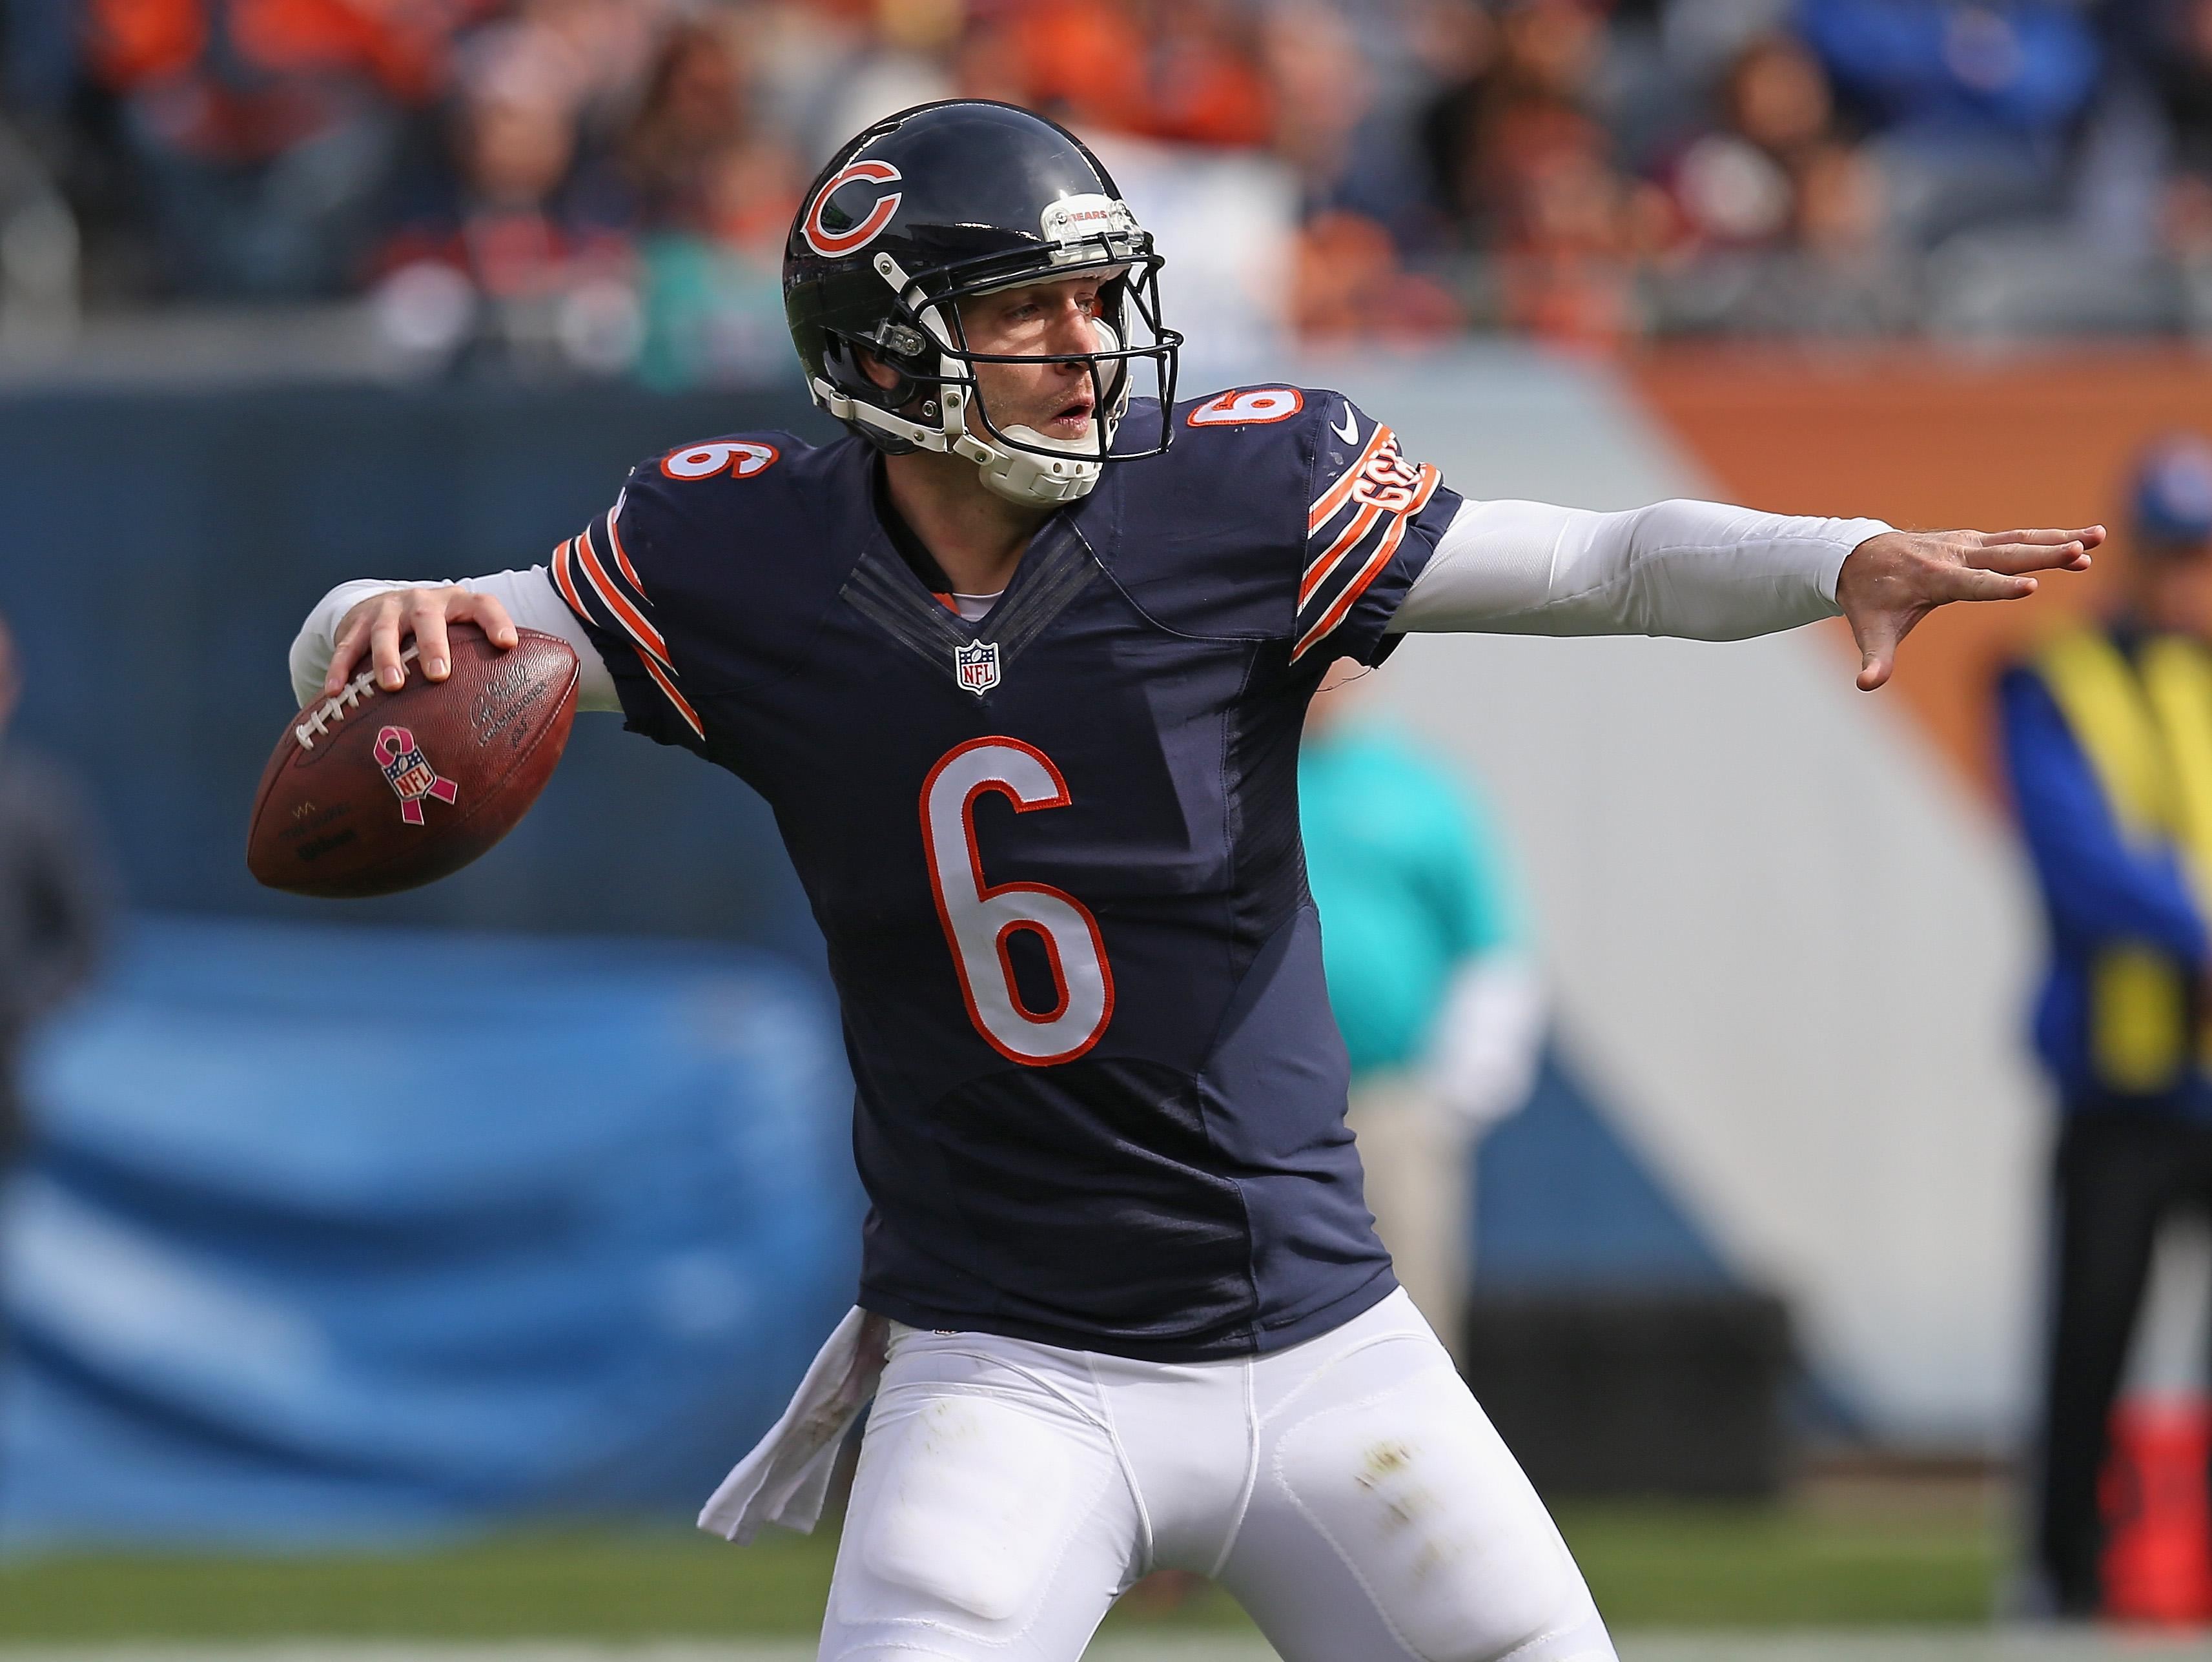 Jay Cutler joins Dolphins with 1-year deal, Tannehill injury looms